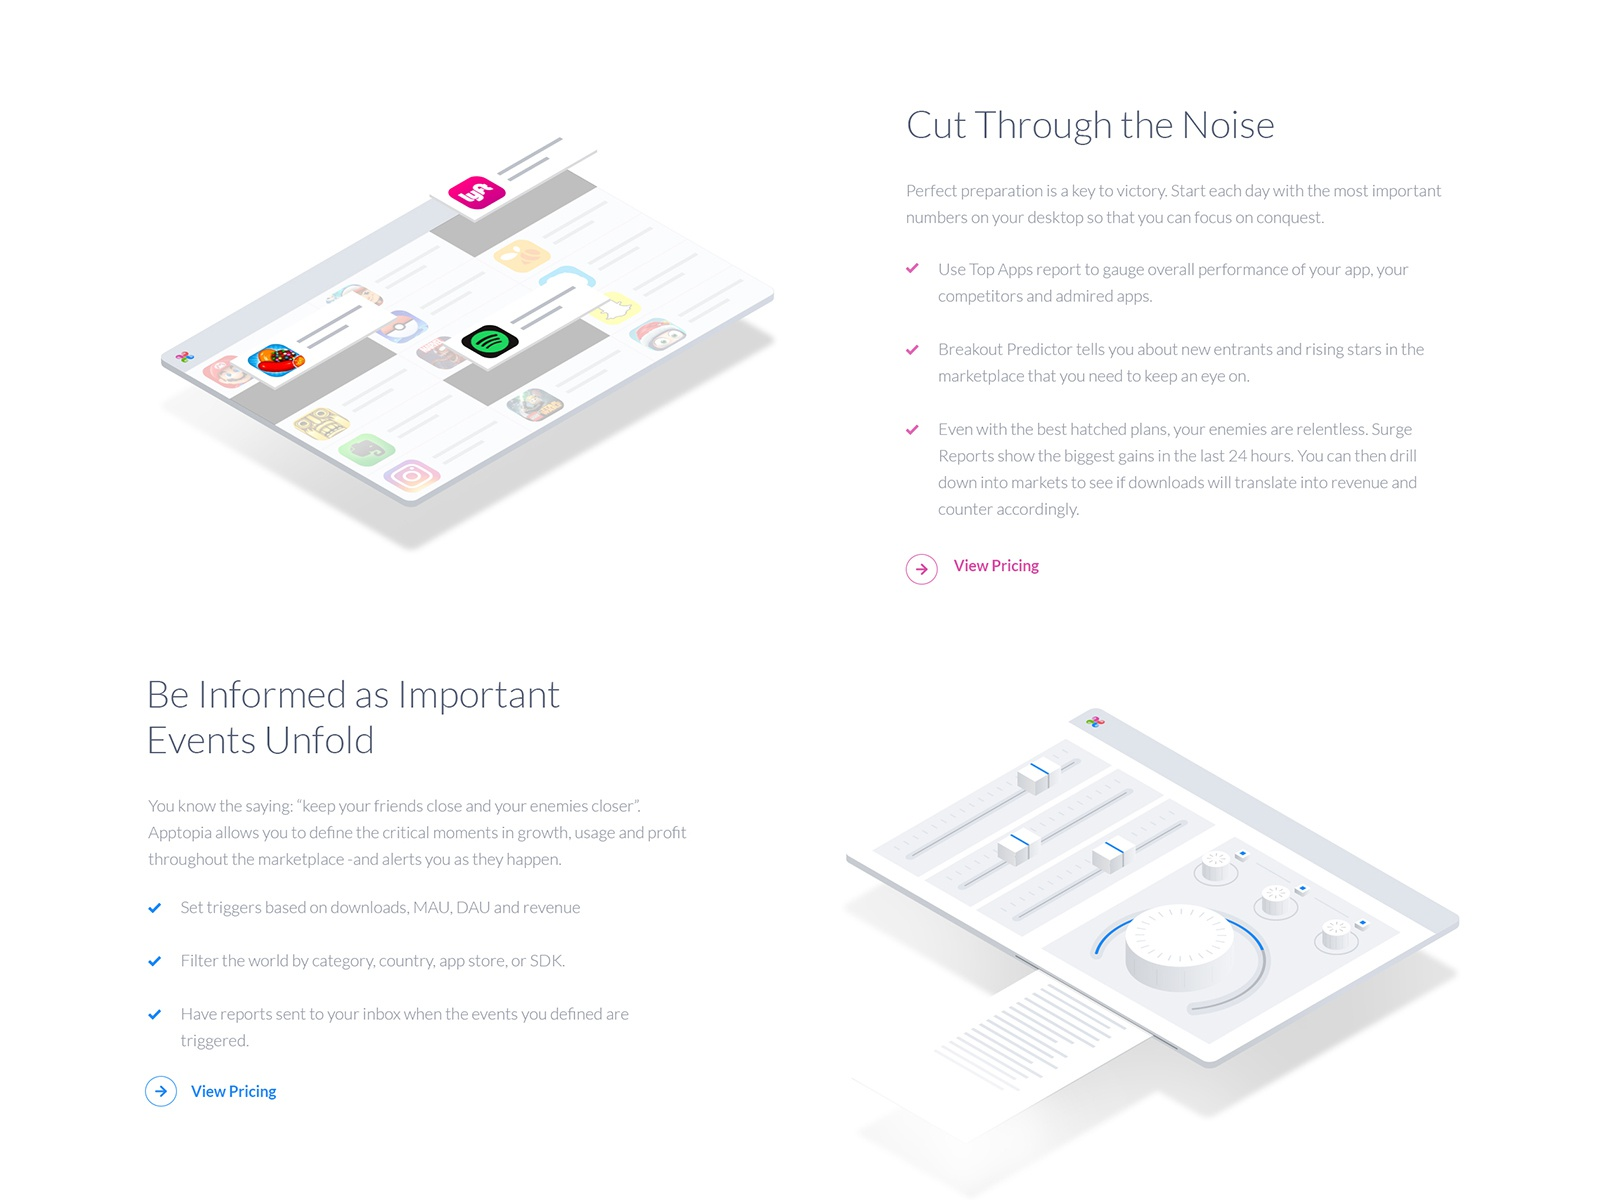 Apptopia illus